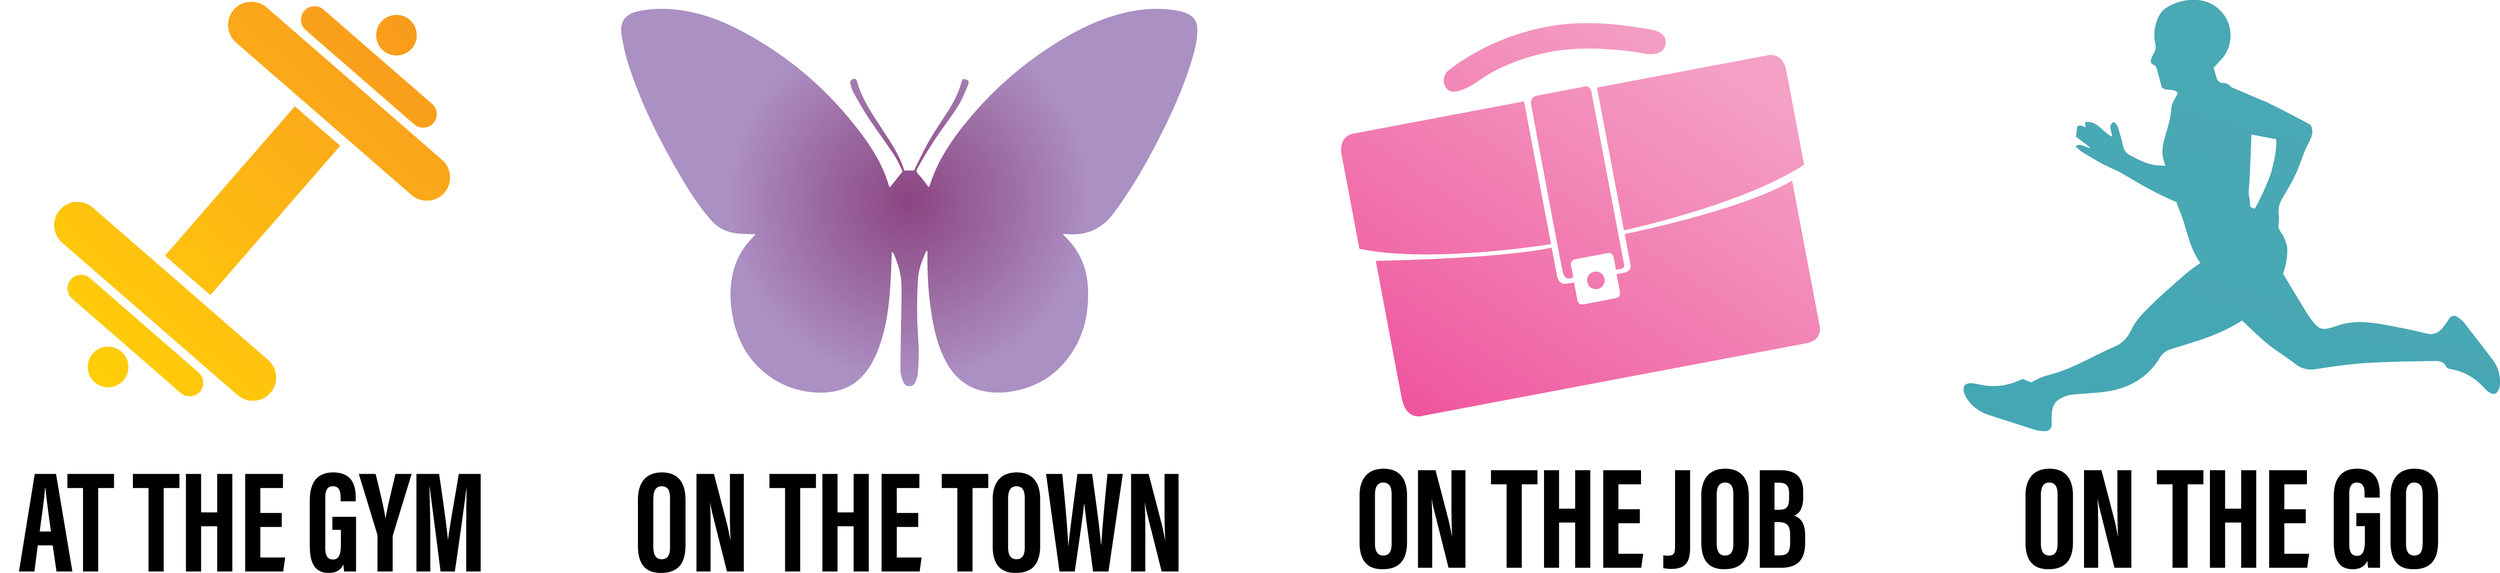 Flavor Icon Line-01.png